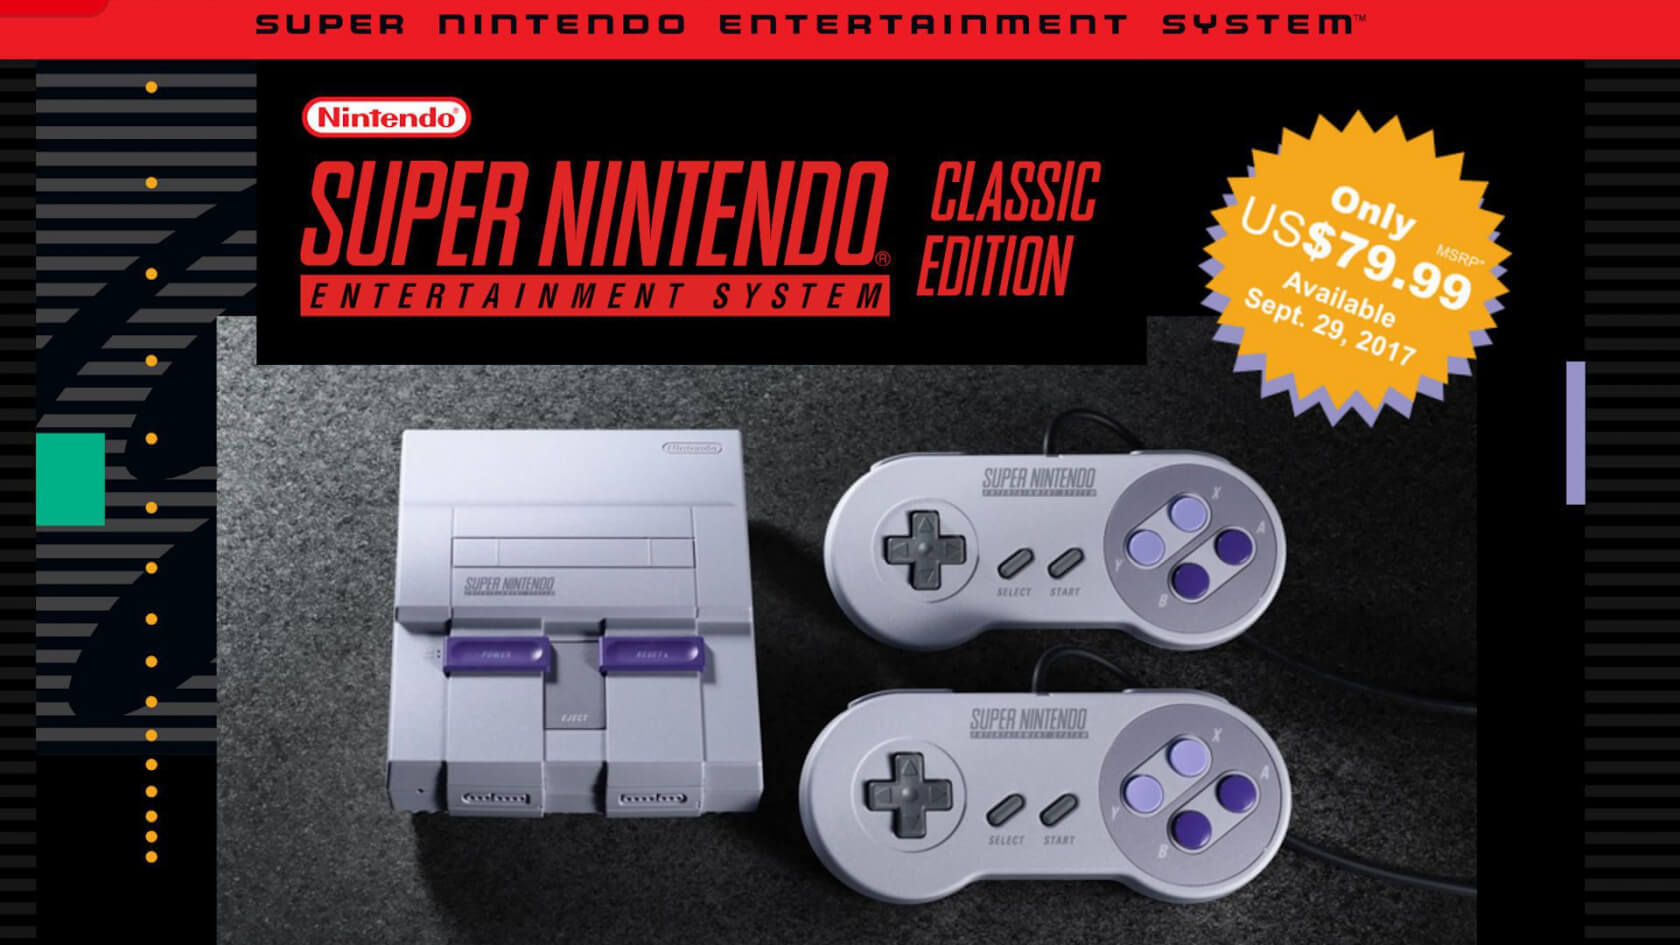 Pre-orders for Nintendo's Super NES Classic go live and sell out instantly